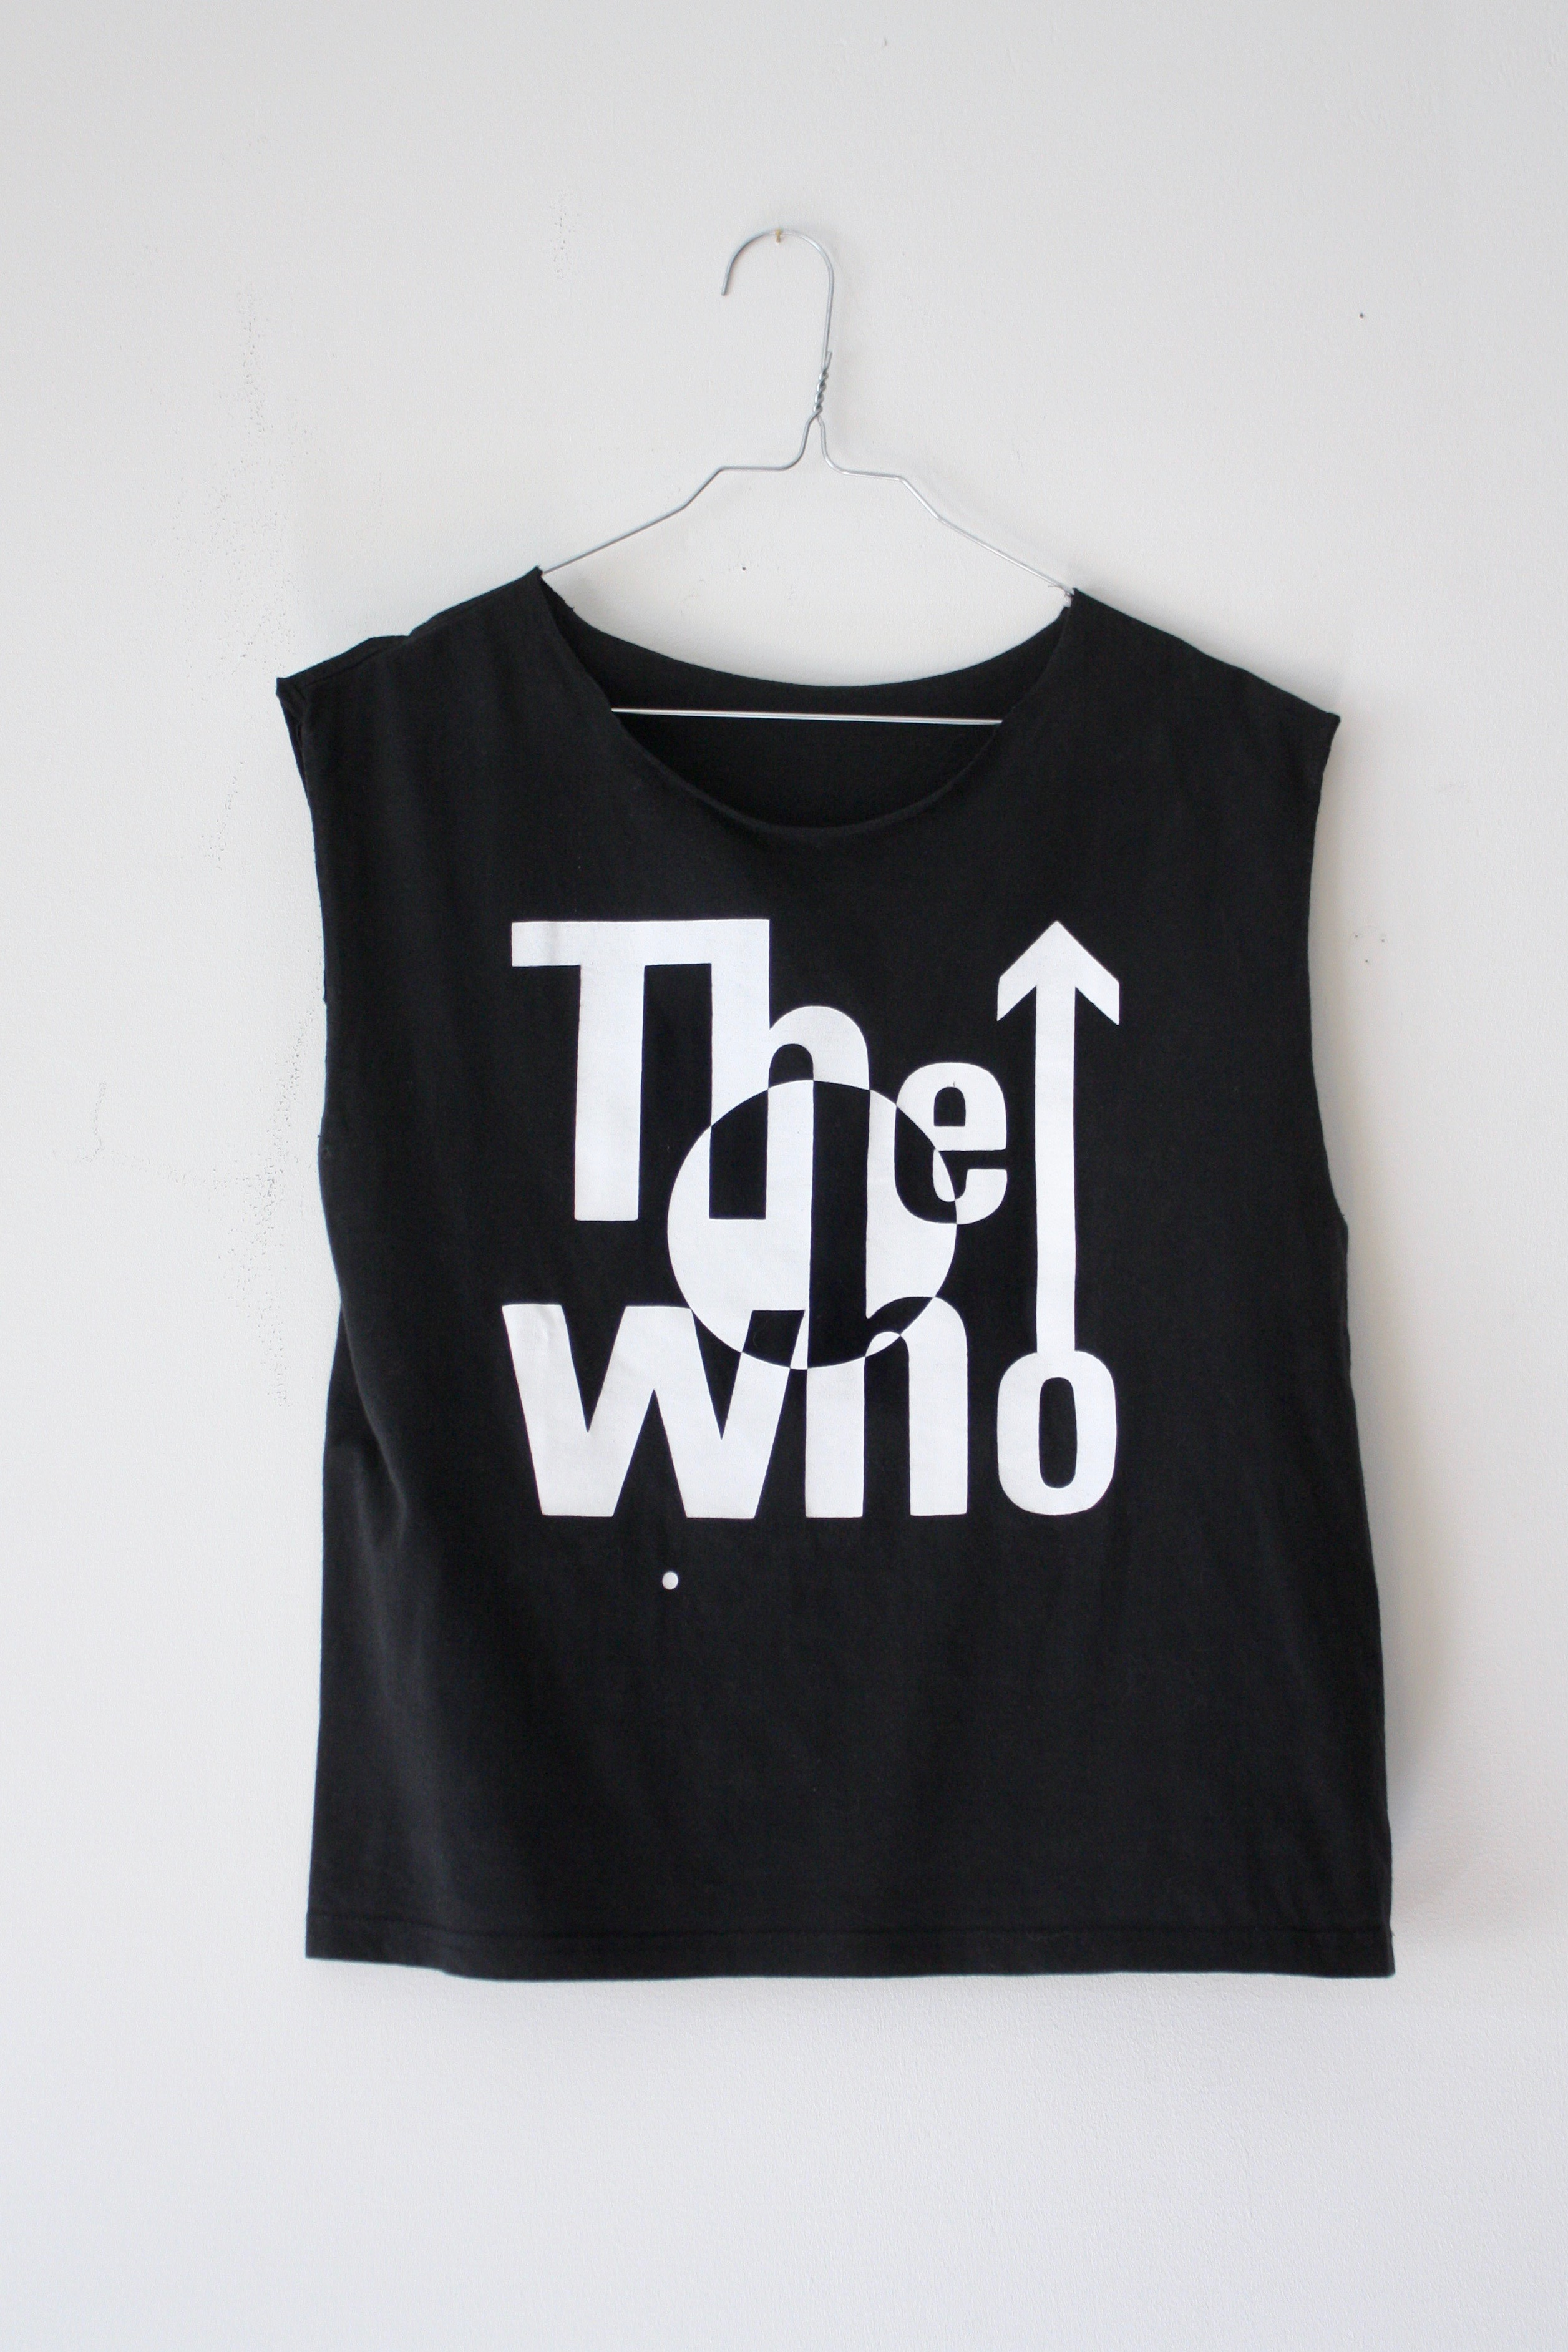 Band T-shirt The Who, stl M